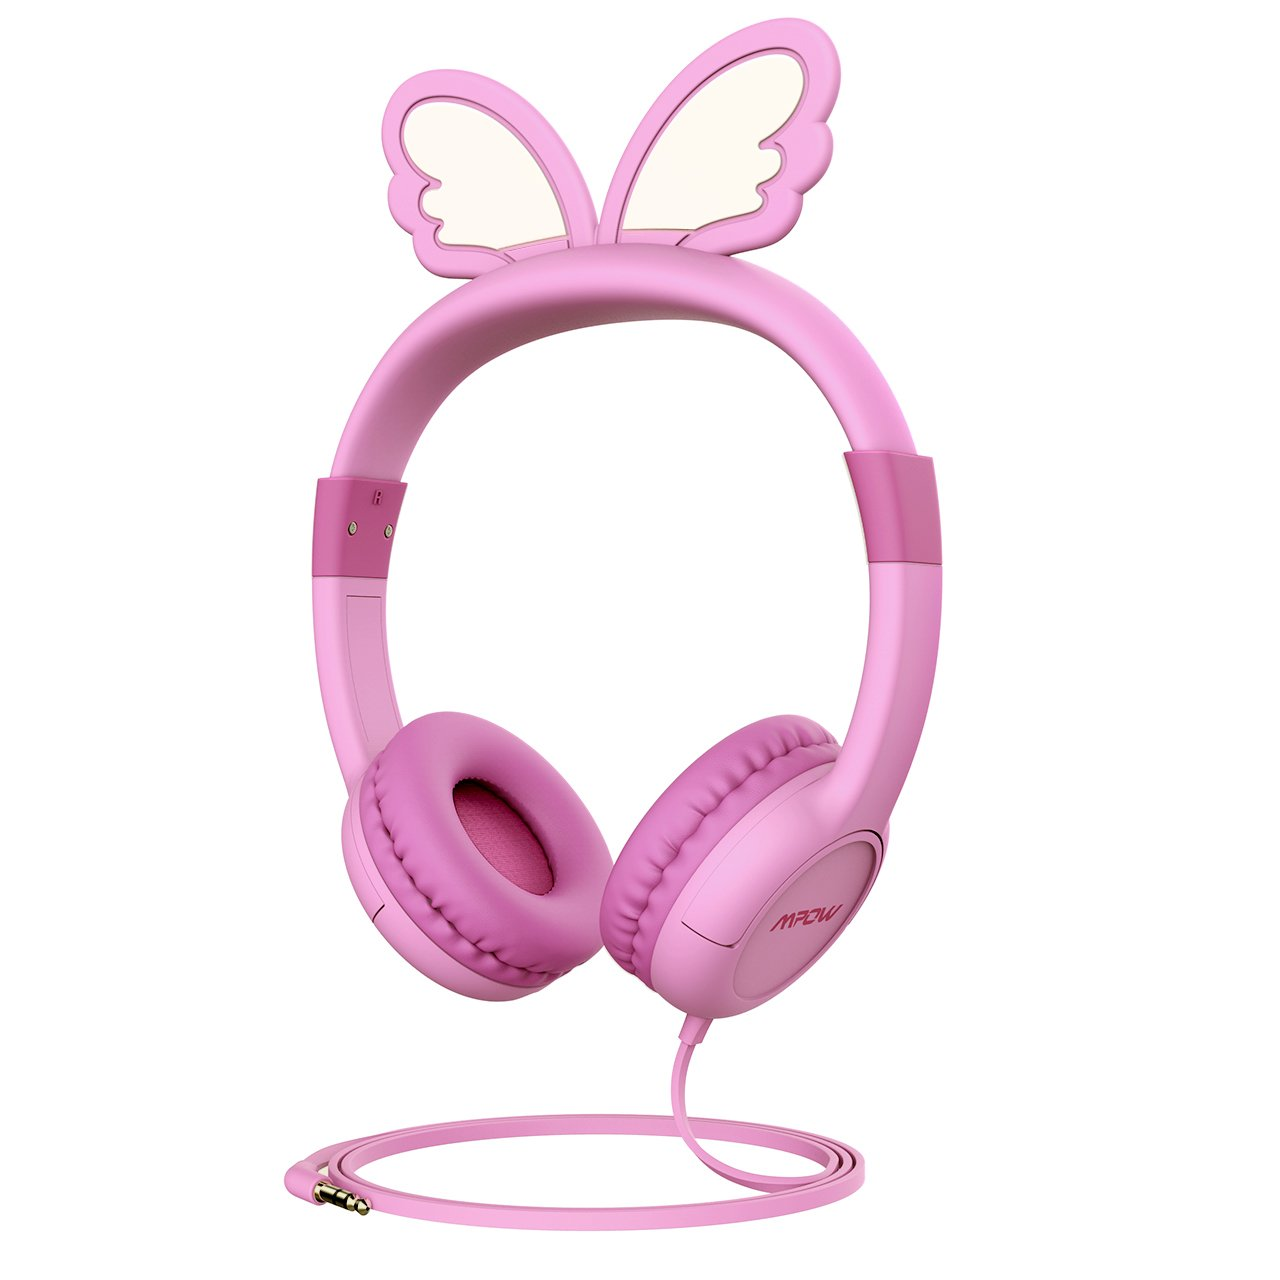 Mpow Kids Headphones with 85dB Volume Limited Hearing Protection, Music Sharing Function, Wired On-Ear Headsets, Compatible with iPad, Smartphones, Laptops, Gifts for Children by Mpow